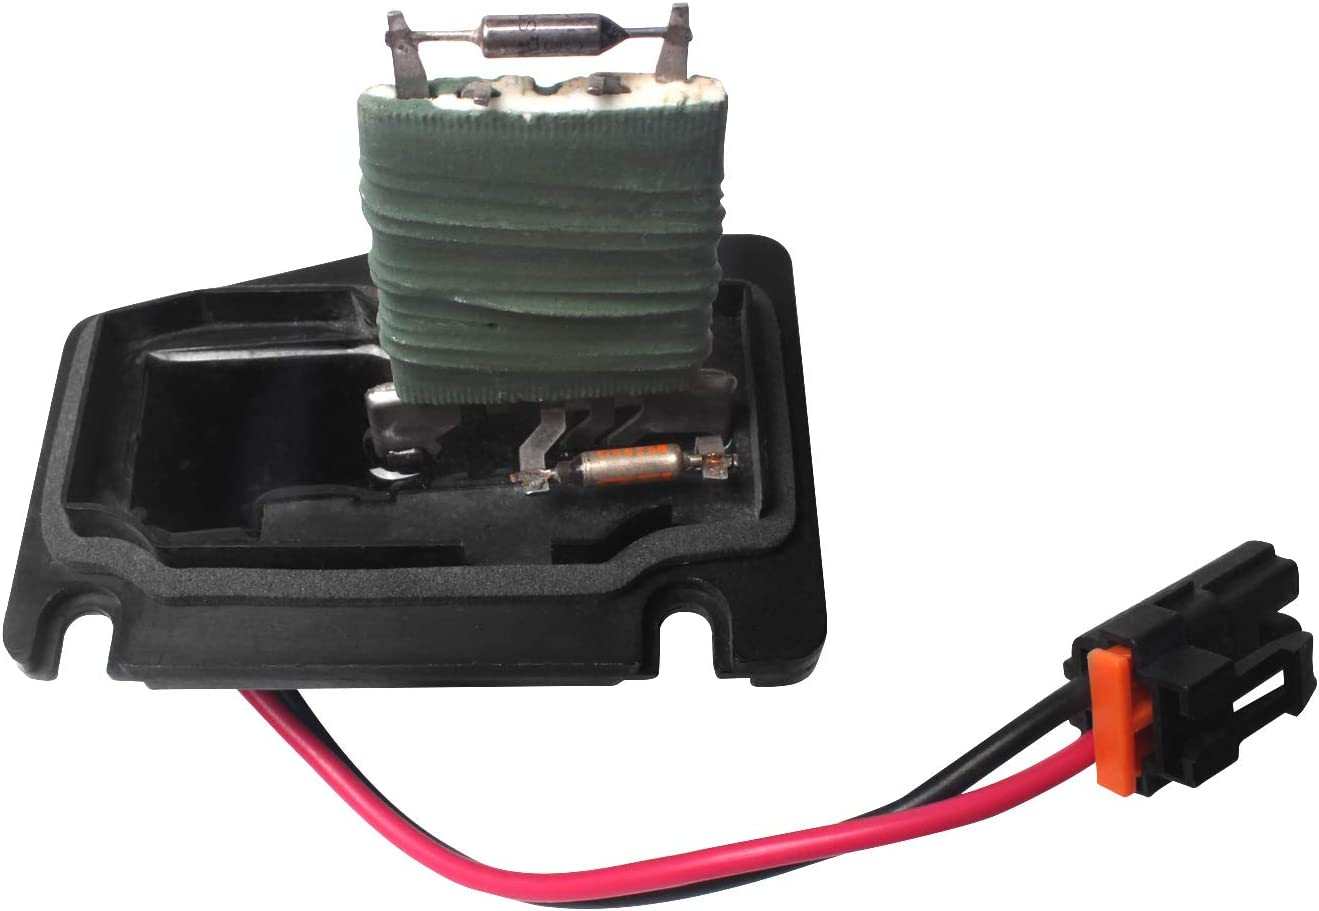 973-408 Beneges HVAC Blower Motor Fan Resistor with Wire Harness Compatible with 1997-2005 Chevy Corvette Impala Monte Carlo Oldsmobile Pontiac Buick 89019101